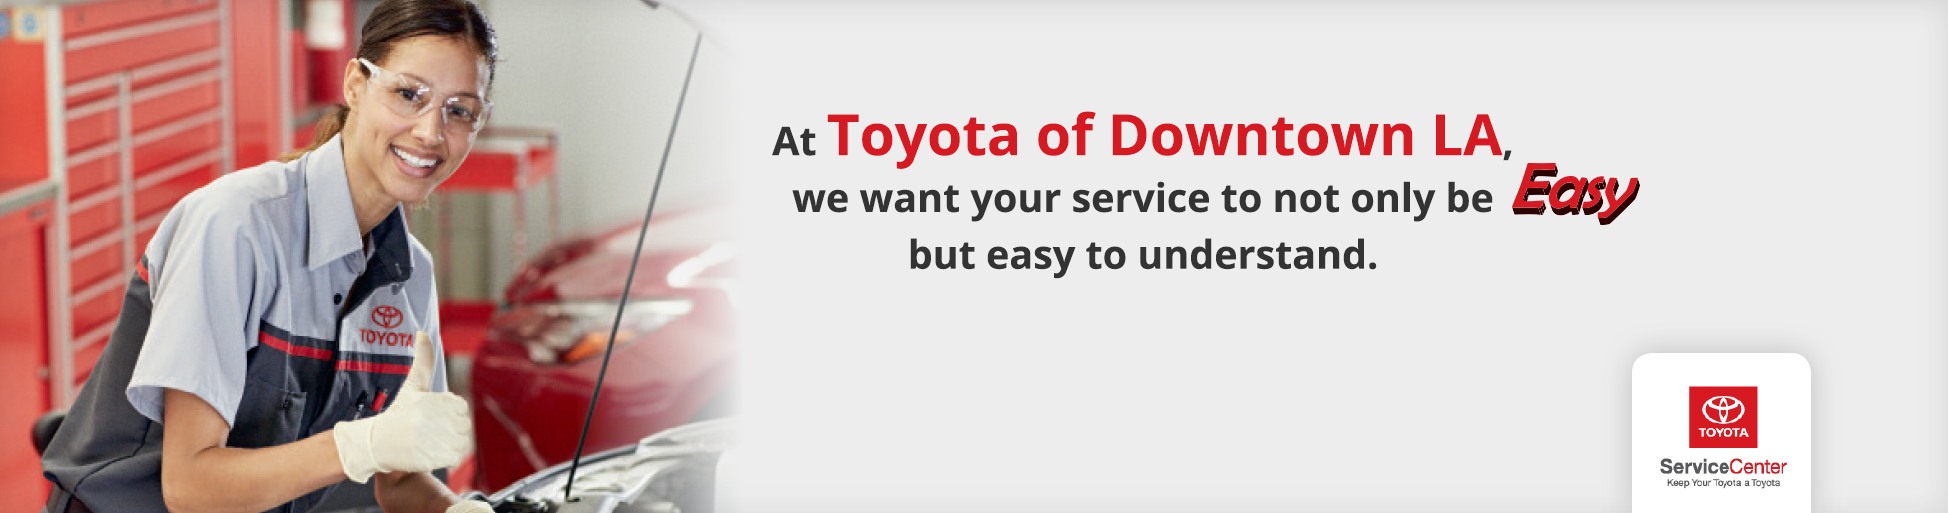 Toyota Vehicle Services In LA